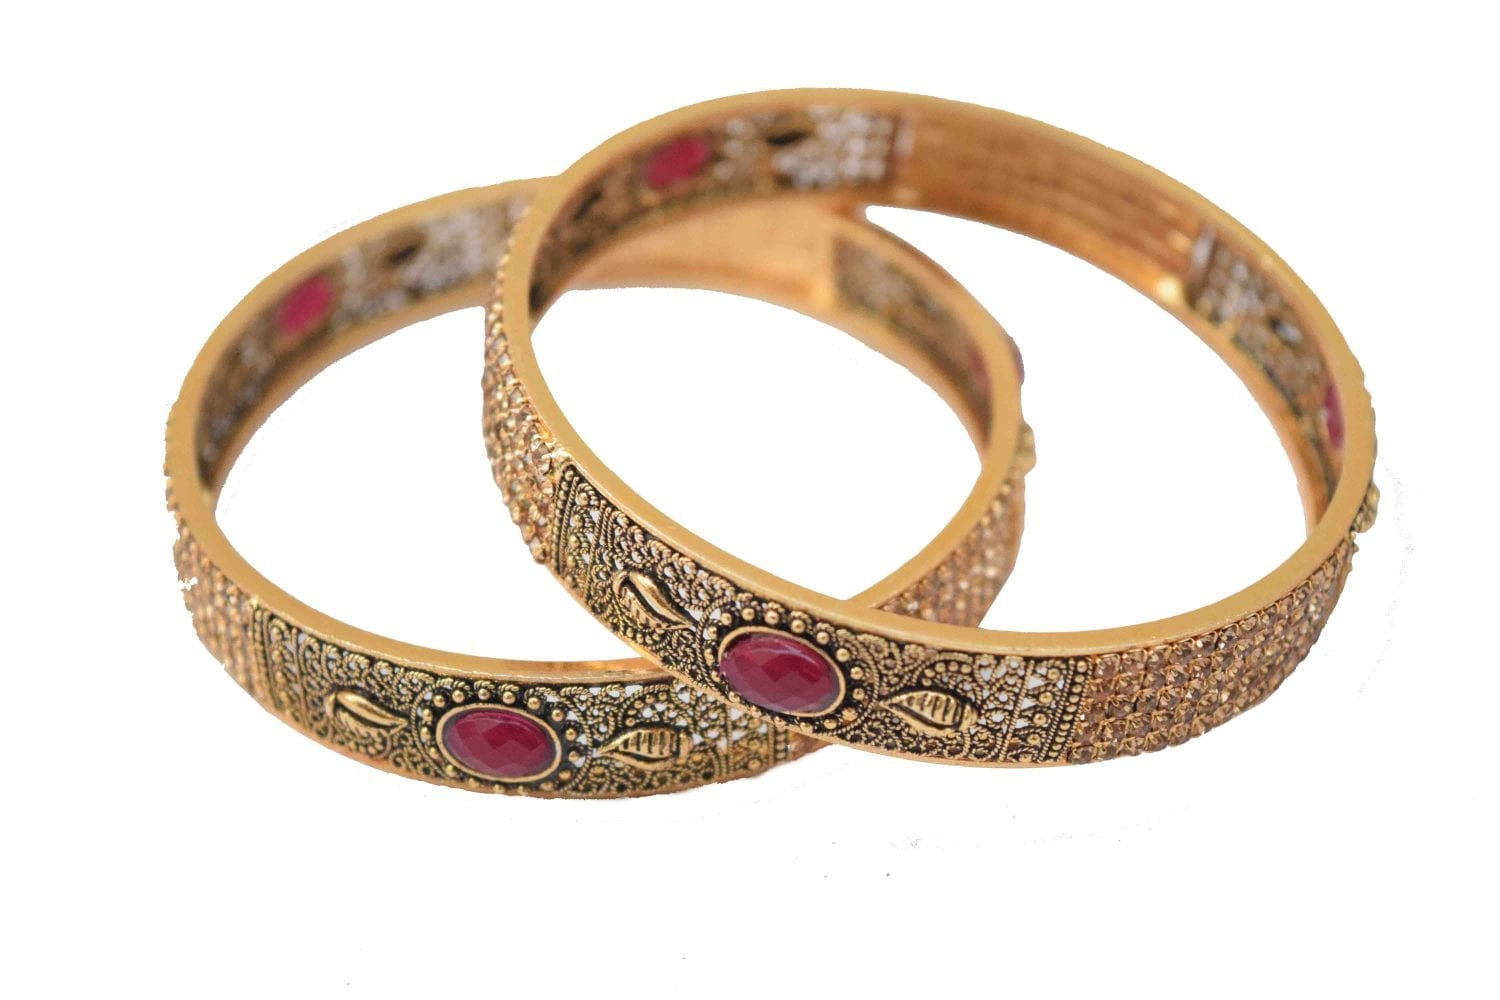 Antique Golden designer bangles with ruby colour stone BN163 1